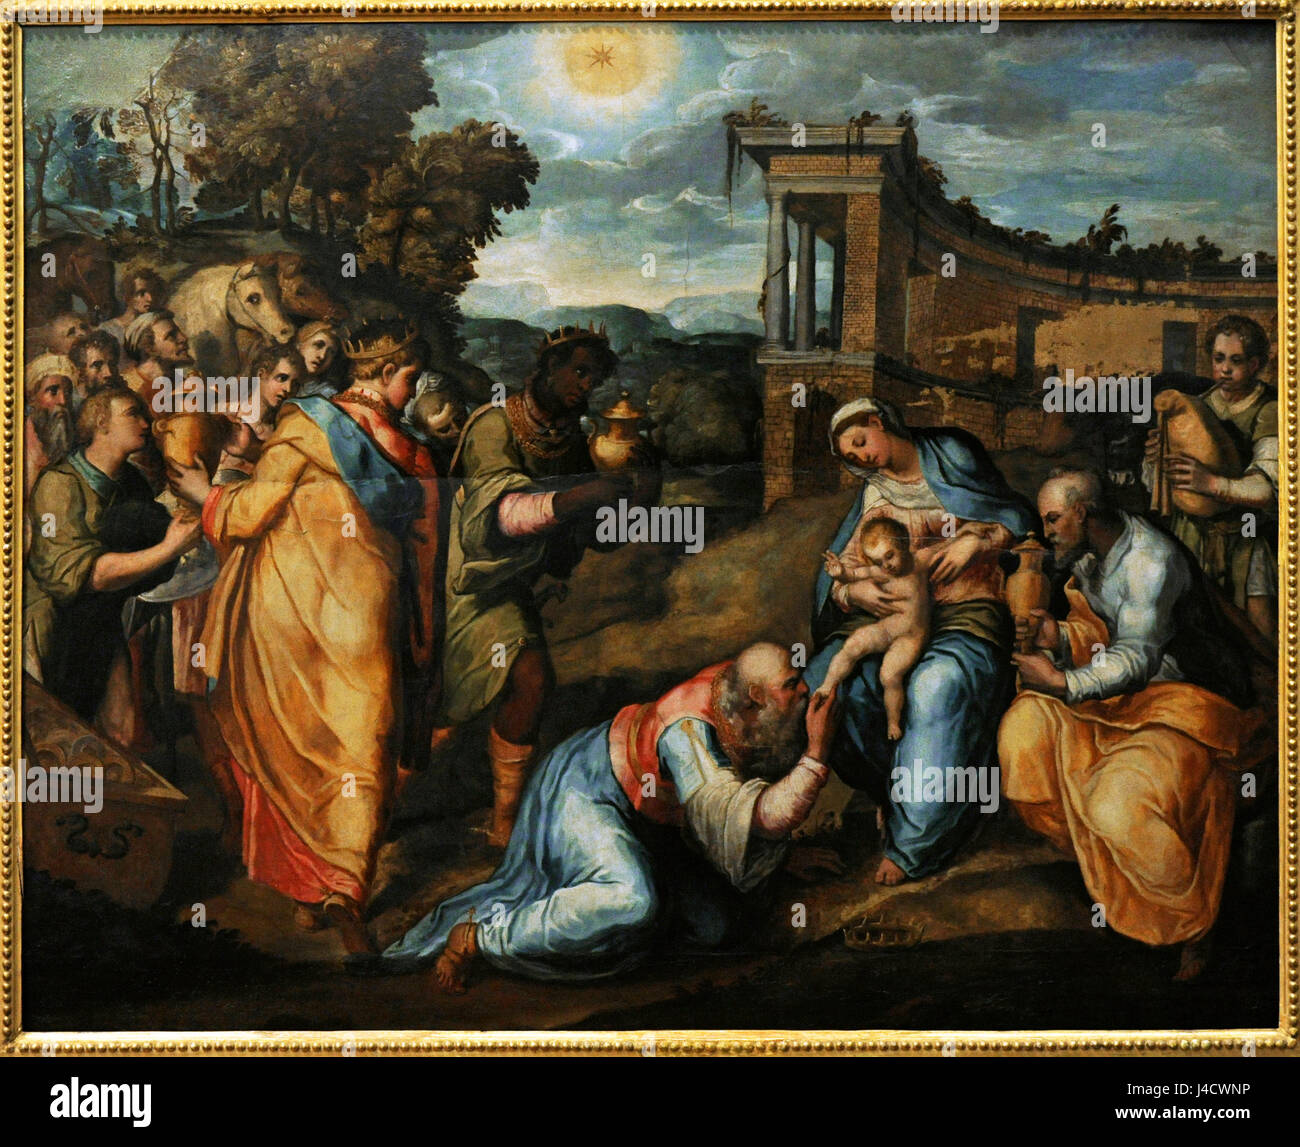 Marco Pino (1521-1583). Italian painter. Renaissance and Mannerist period.  Epiphany or Adoration of the Magi. National Museum of Capodimonte. Naples.  Italy.